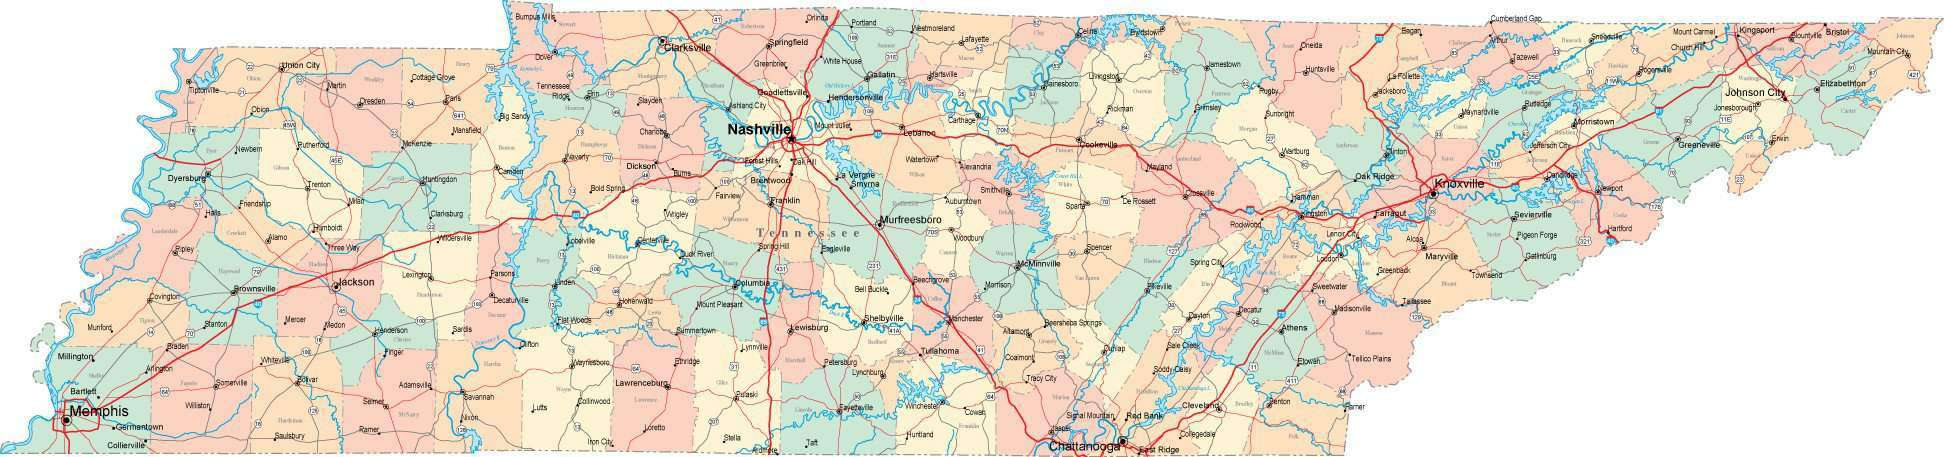 Tennessee State Map Geology And Earth Science Tennessee Political - Tennessee usa map